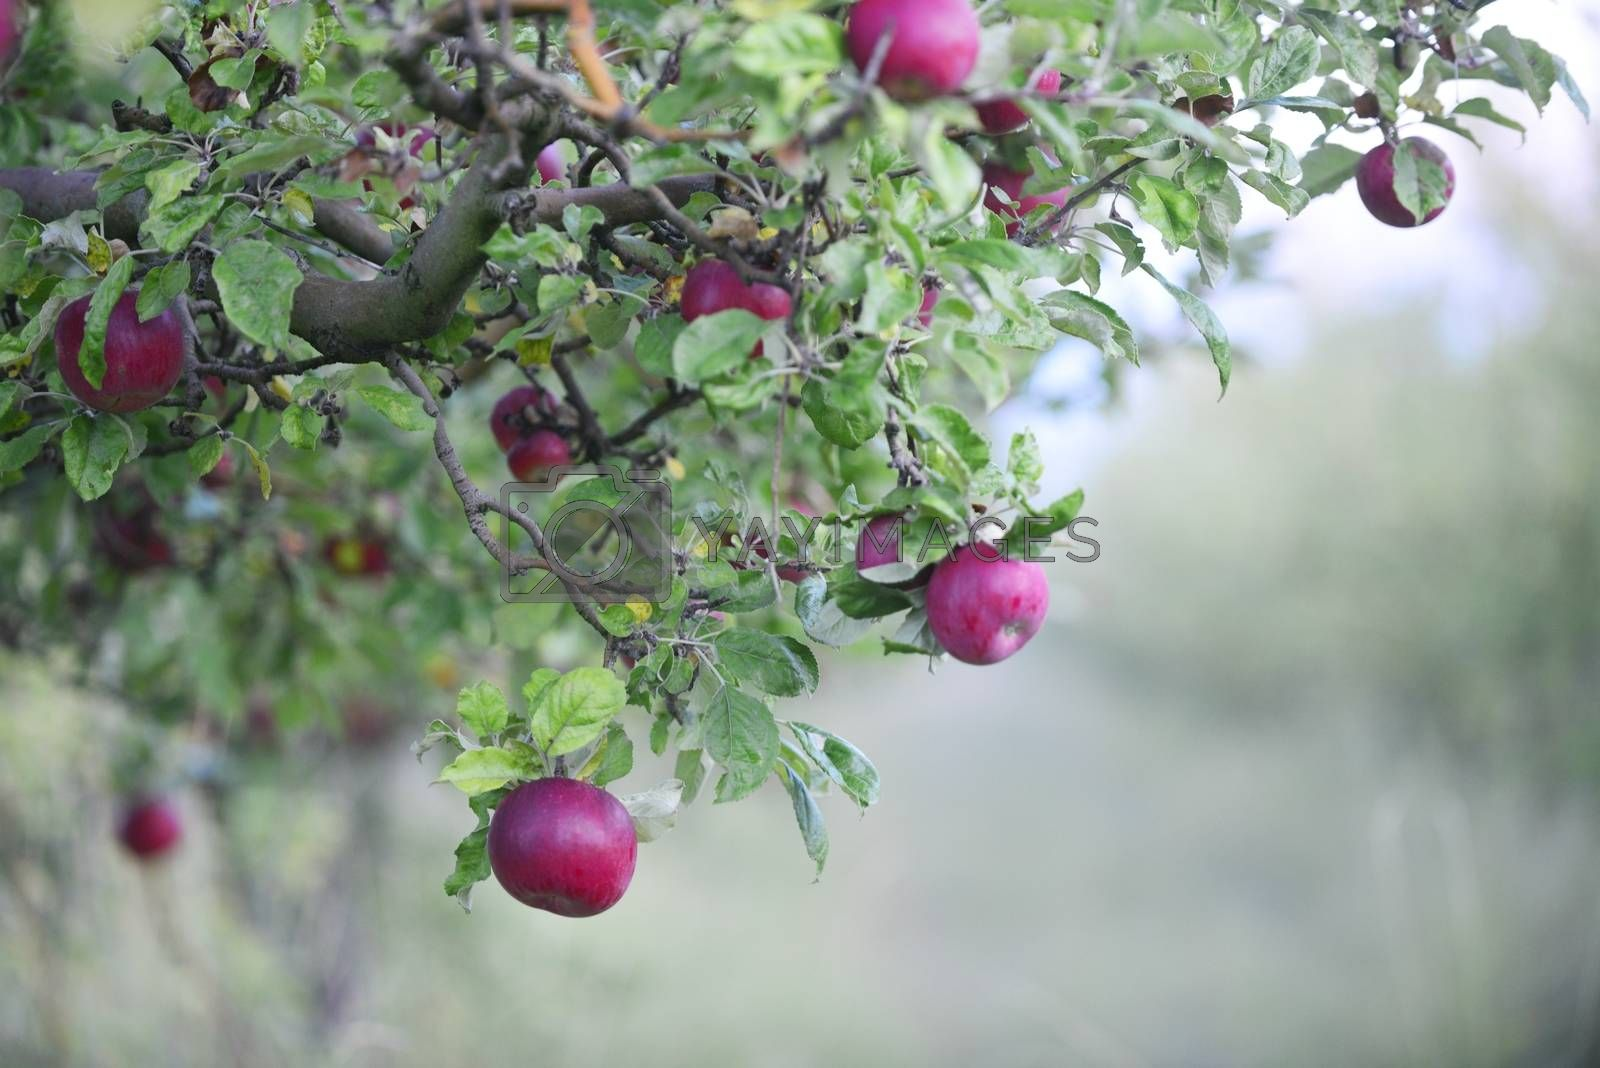 ripe apples in an orchard re